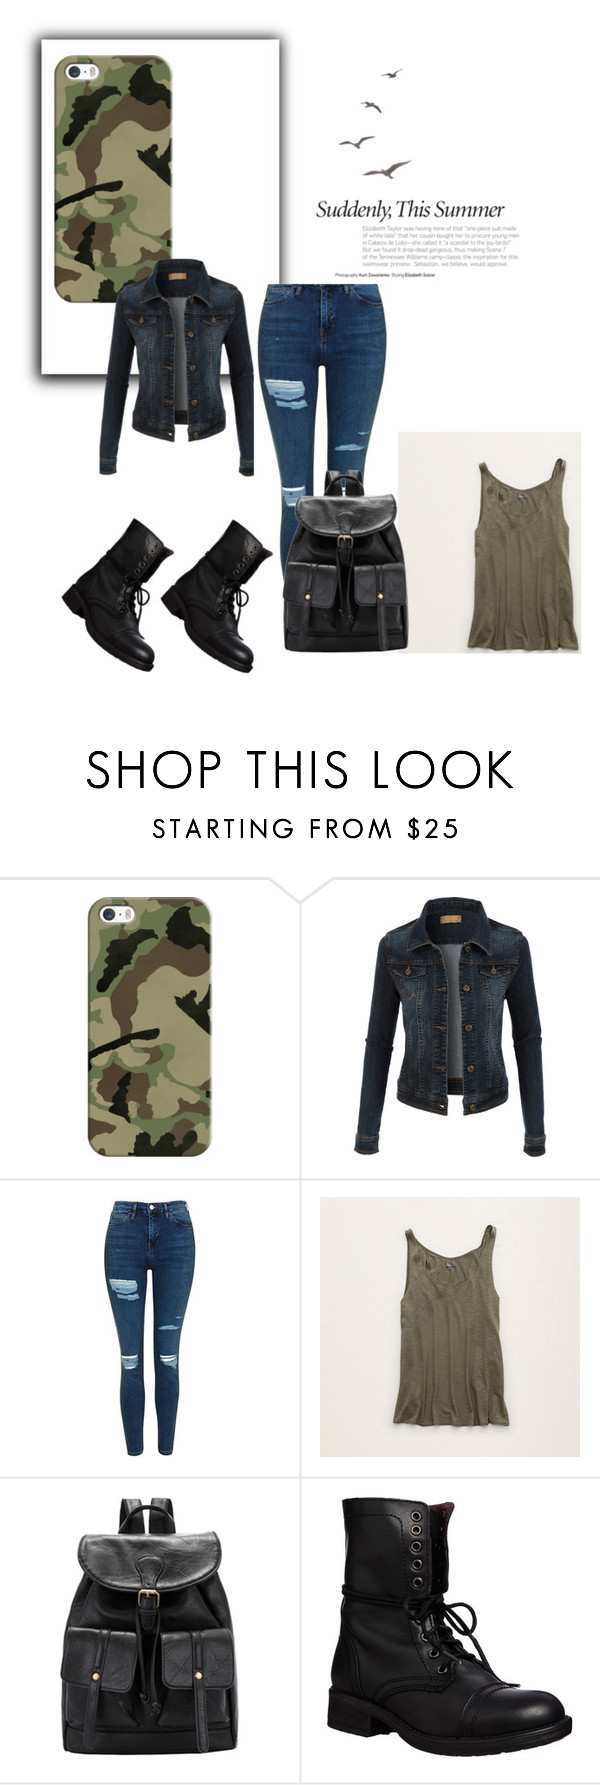 """""""best look ever"""" by alyssacam on Polyvore featuring Casetify, LE3NO, Topshop, Aerie and Steve Madden"""